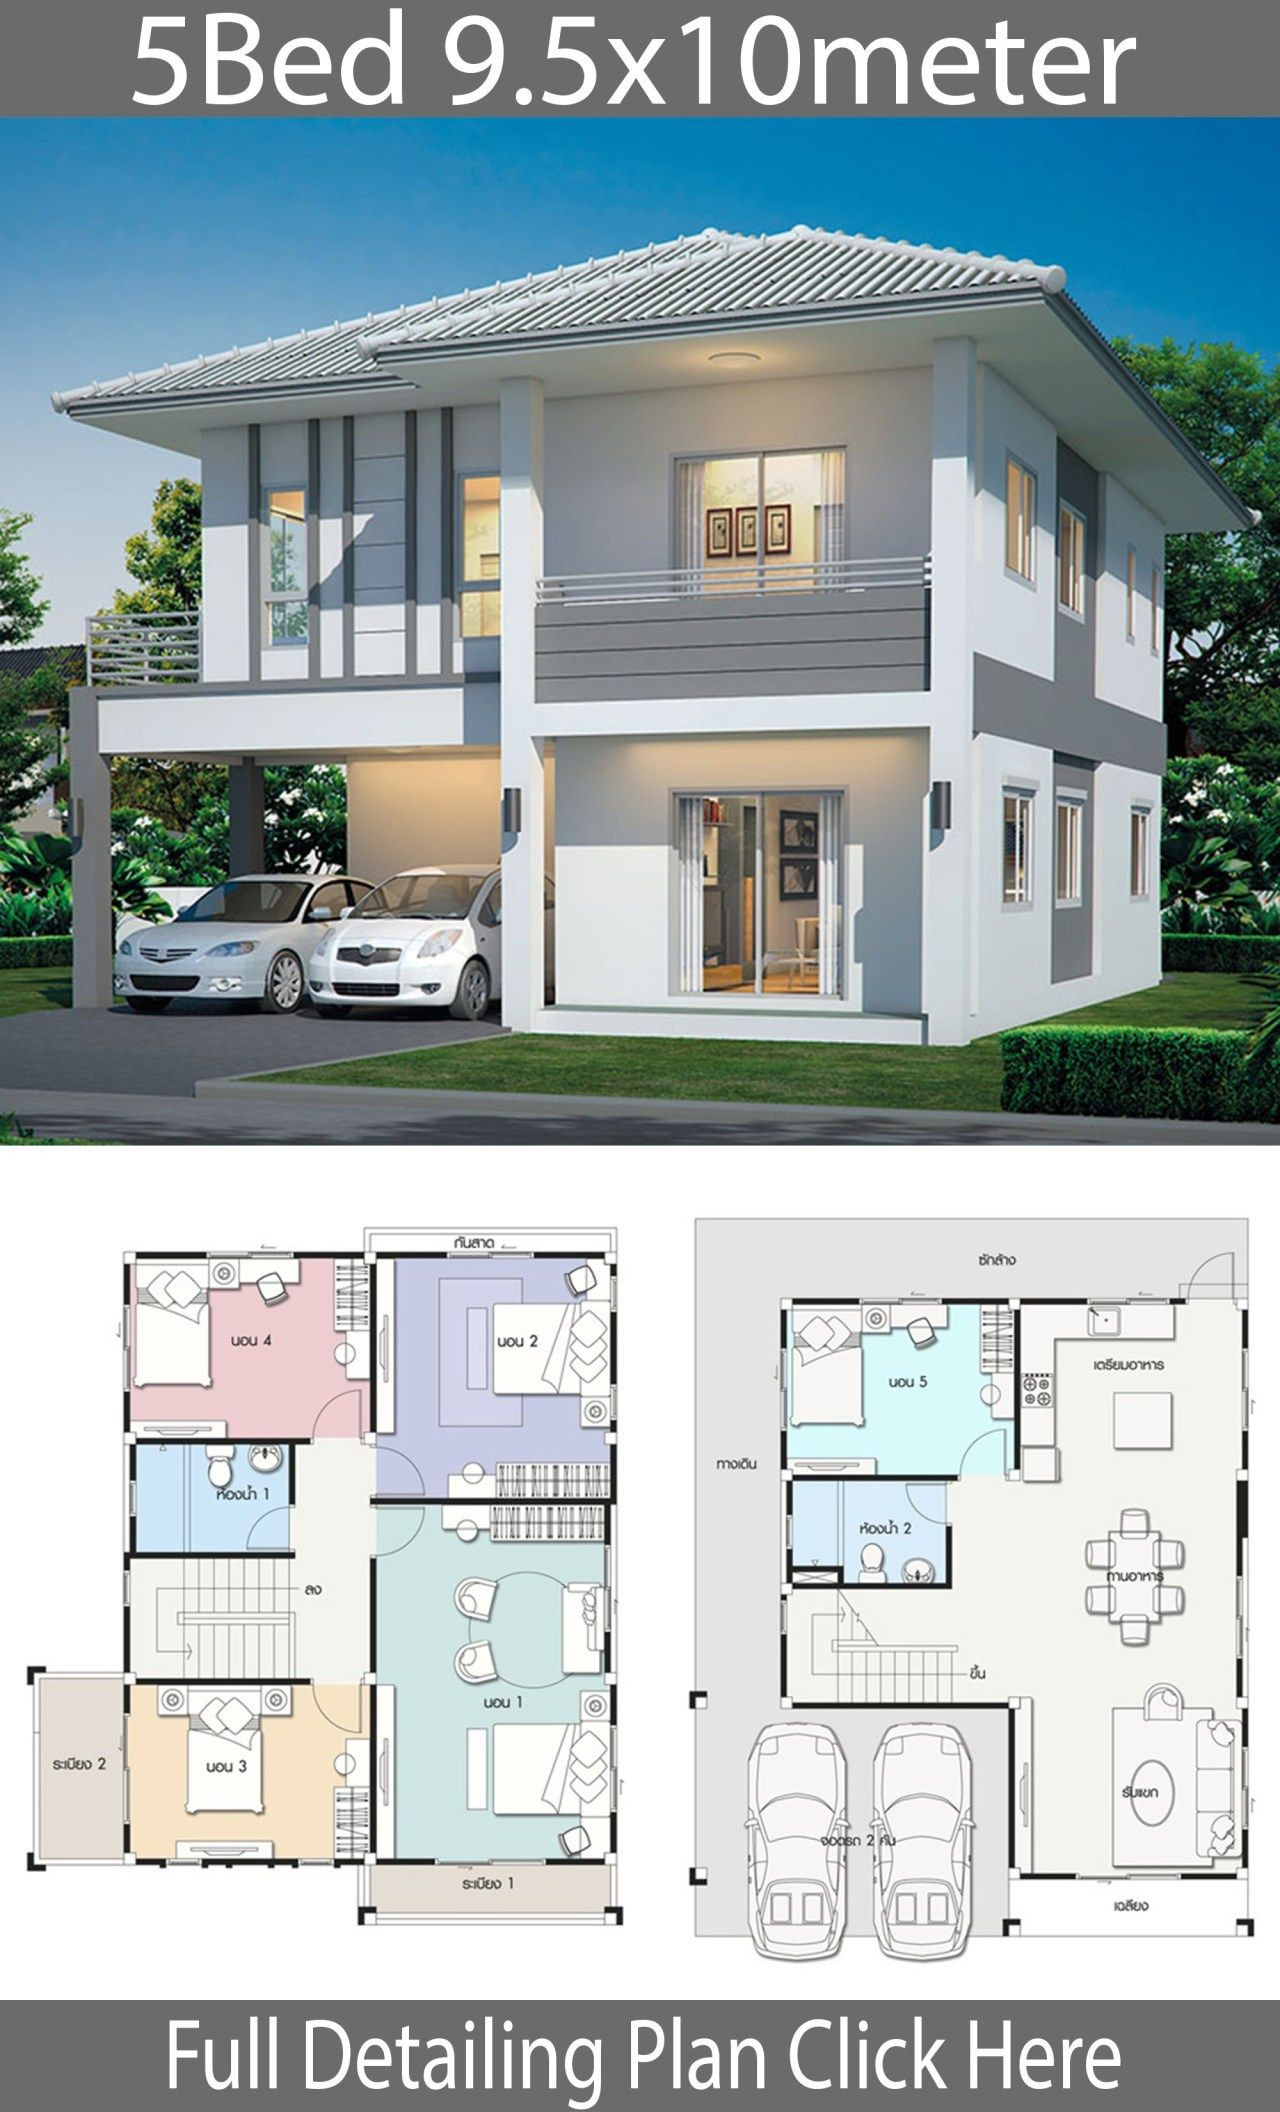 House Design Plan 9 5x10m With 5 Bedrooms Home Ideas Model House Plan House Plan Gallery Architectural House Plans